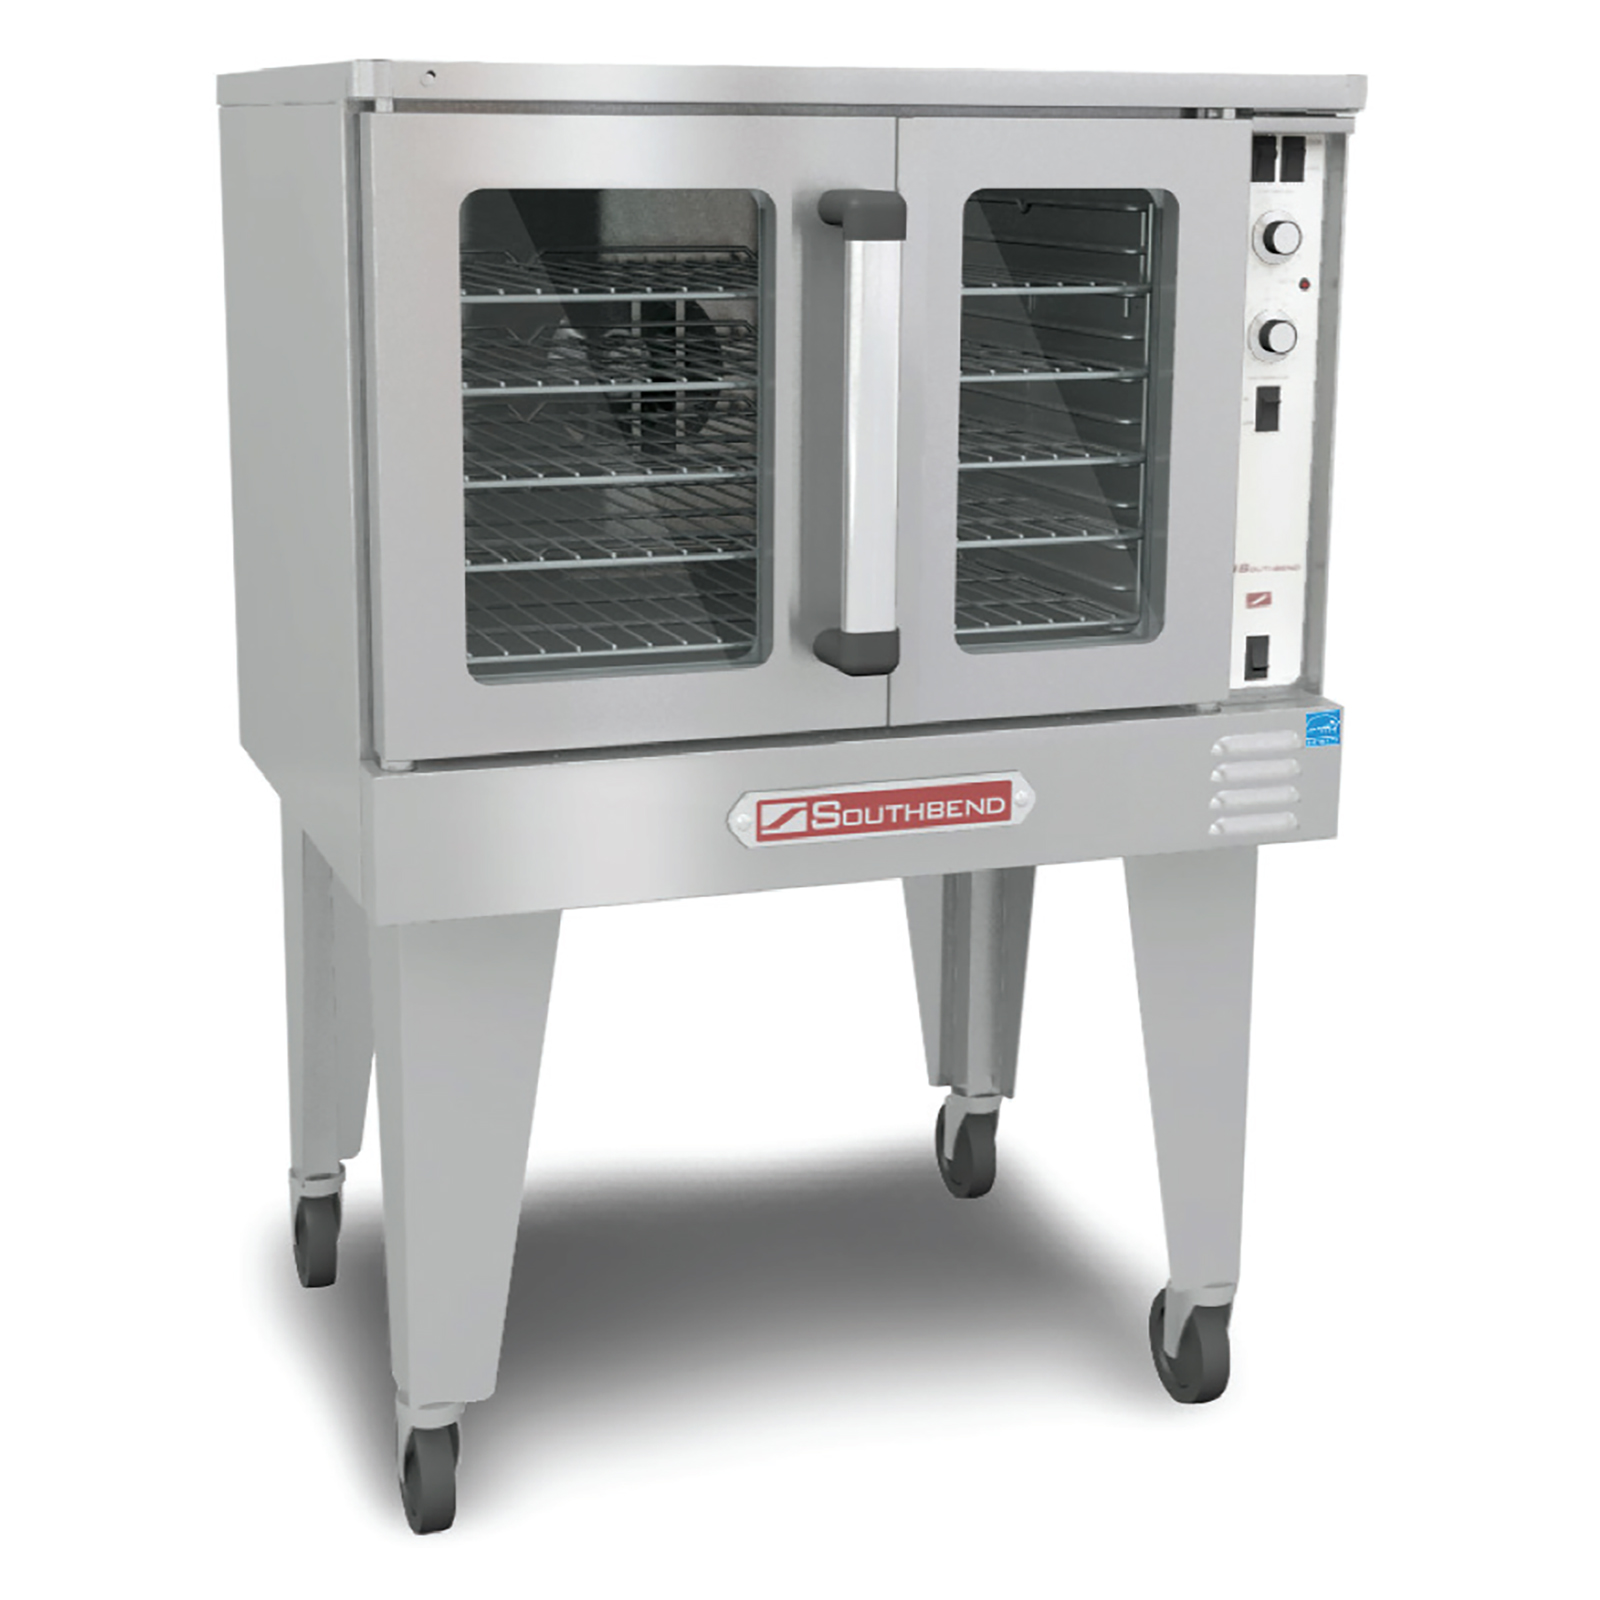 Southbend KLGS/17CCH convection oven, gas